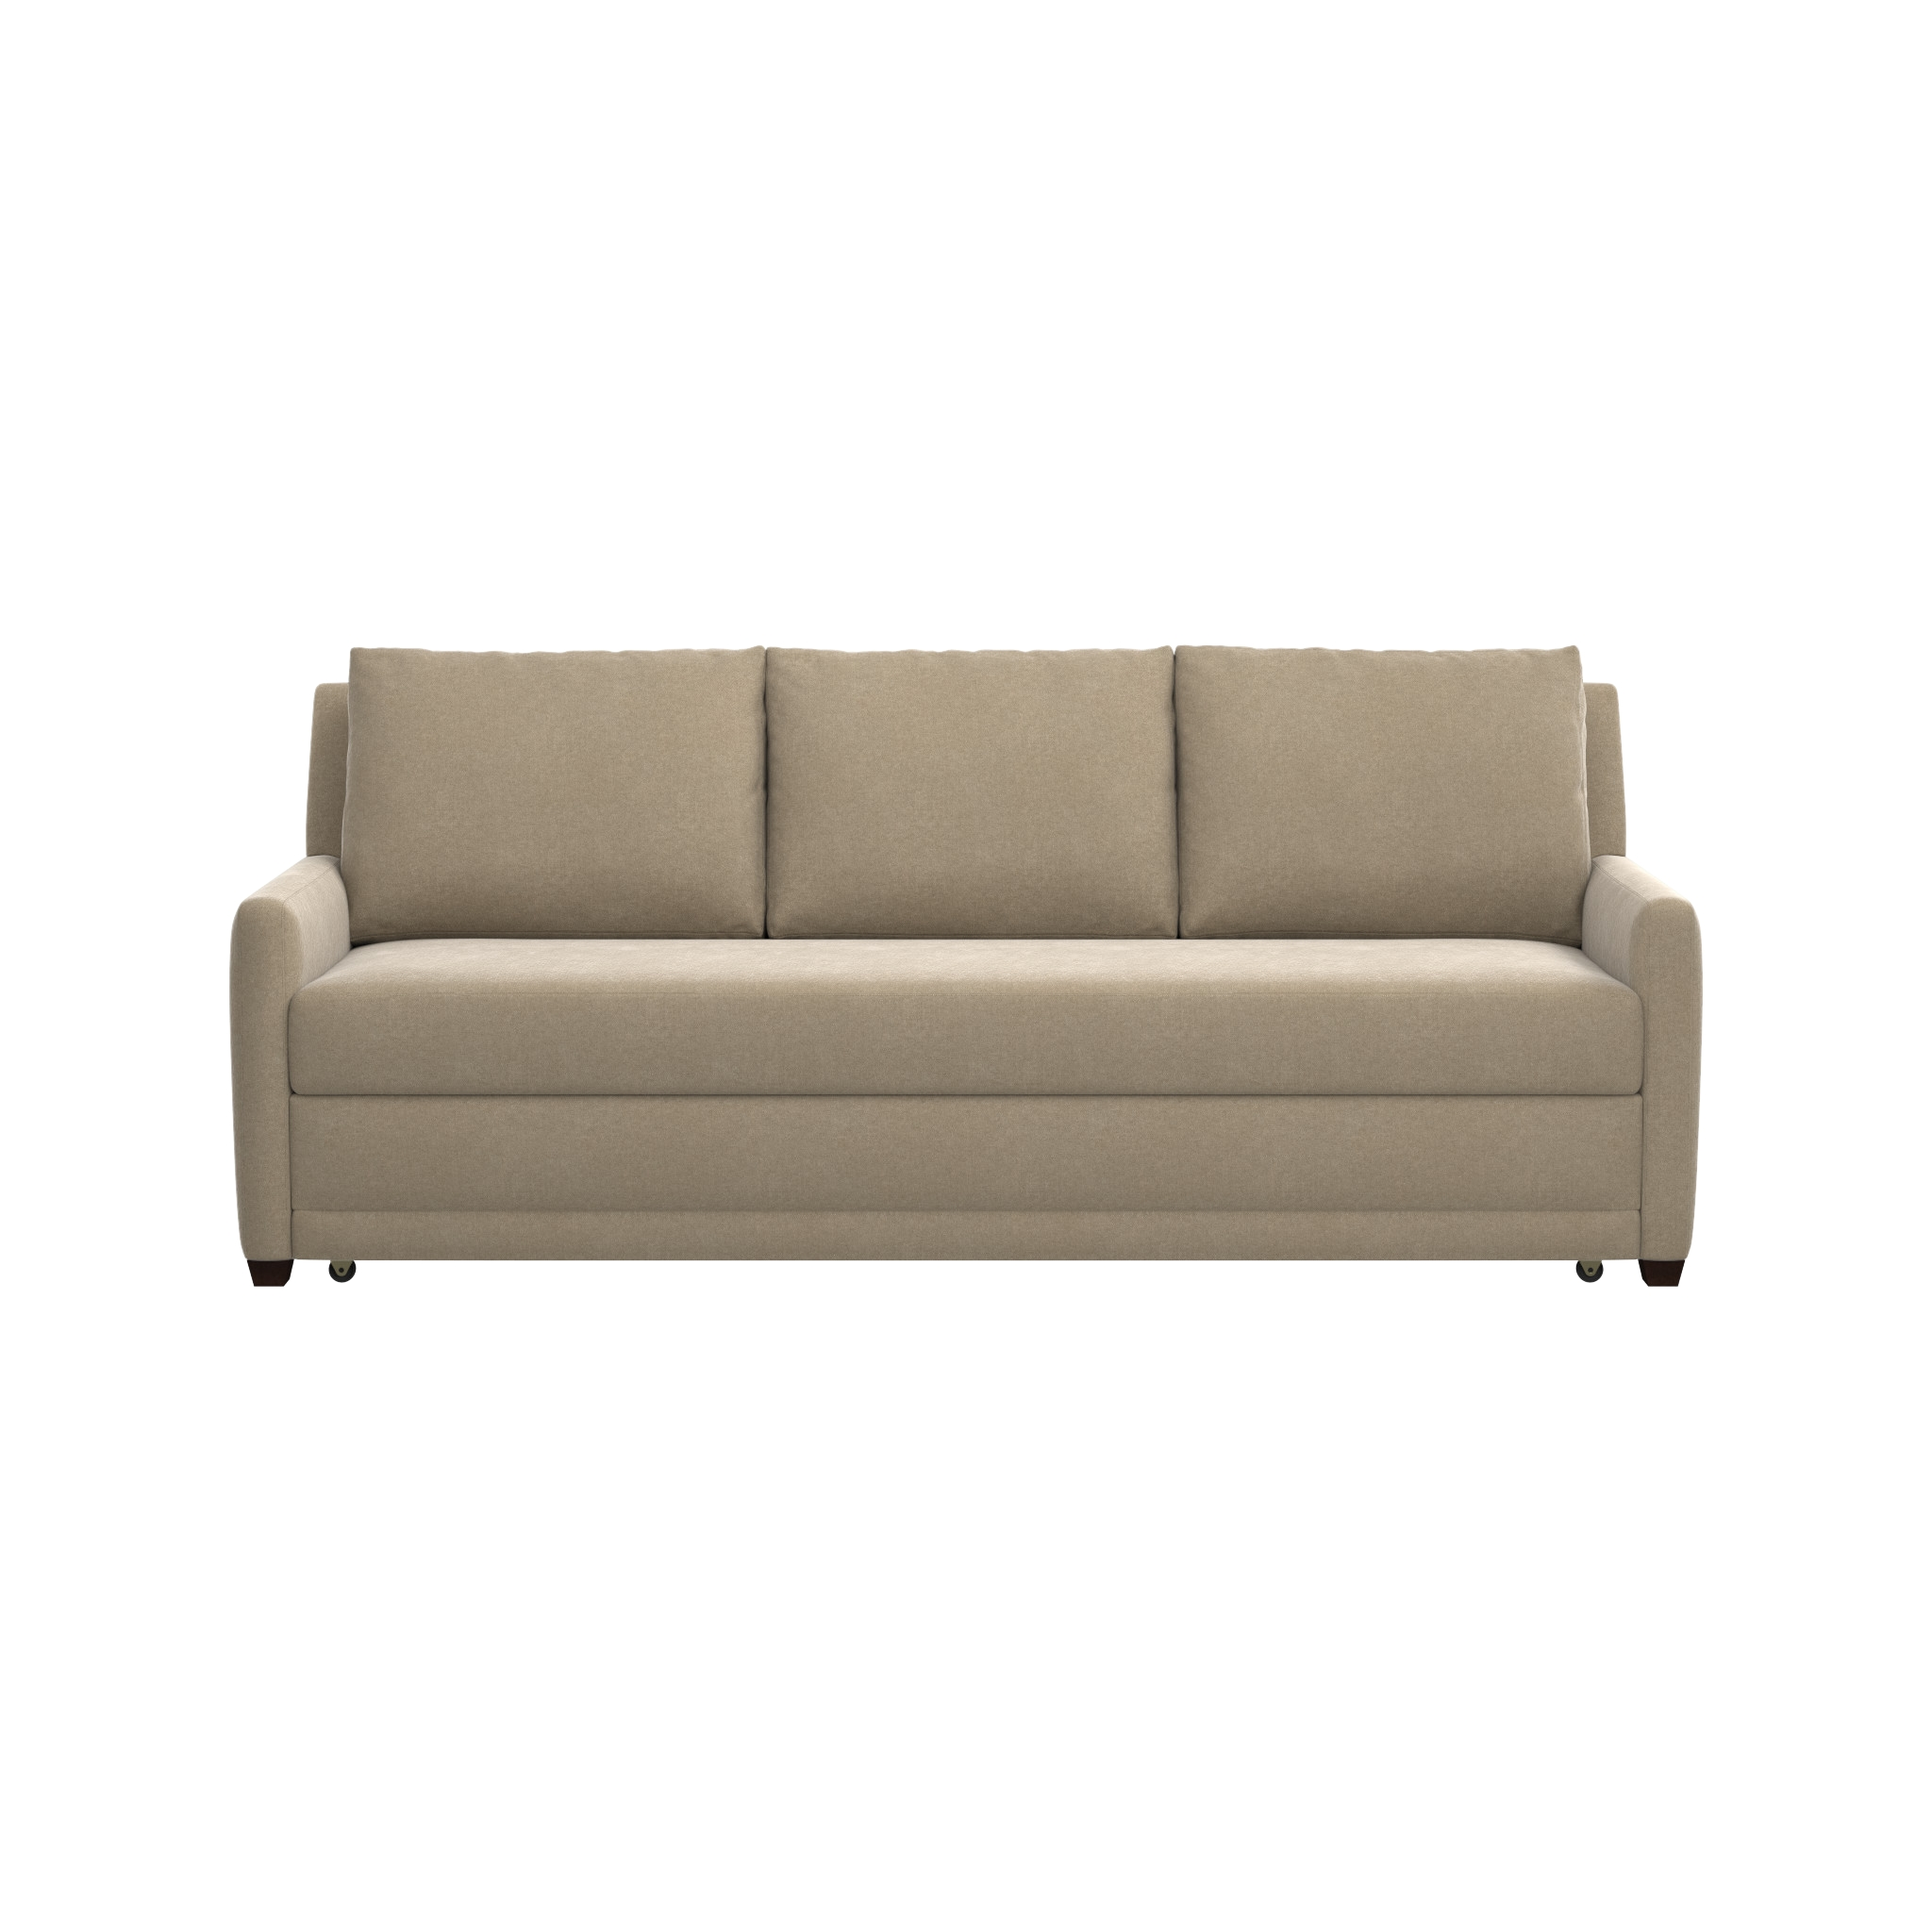 crate and barrel sofa sleeper review sofas cover 20 collection of ideas